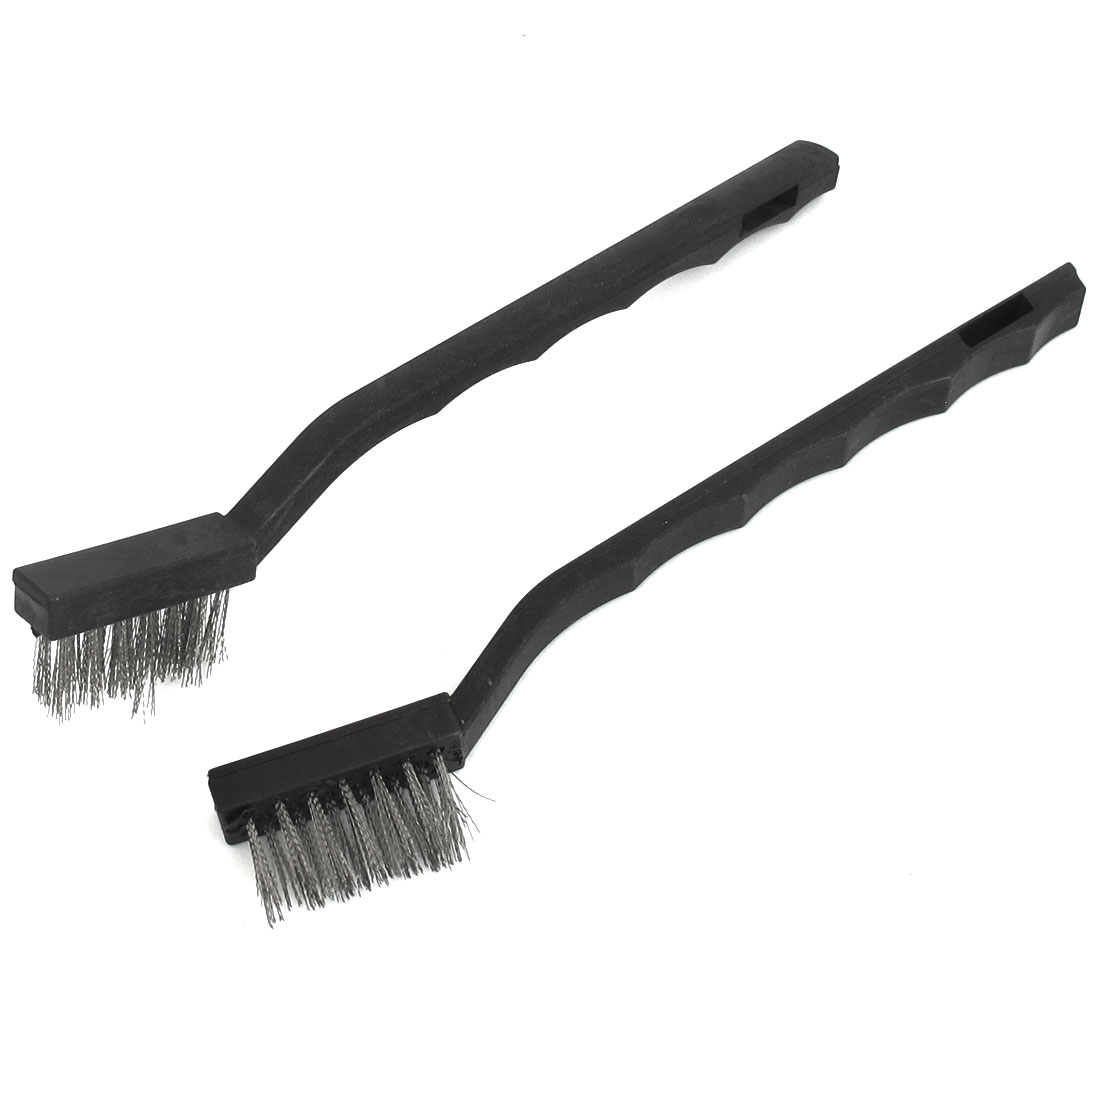 Black Plastic Handle Stainless Steel Wire Cleaning Tooth Brush 2pcs